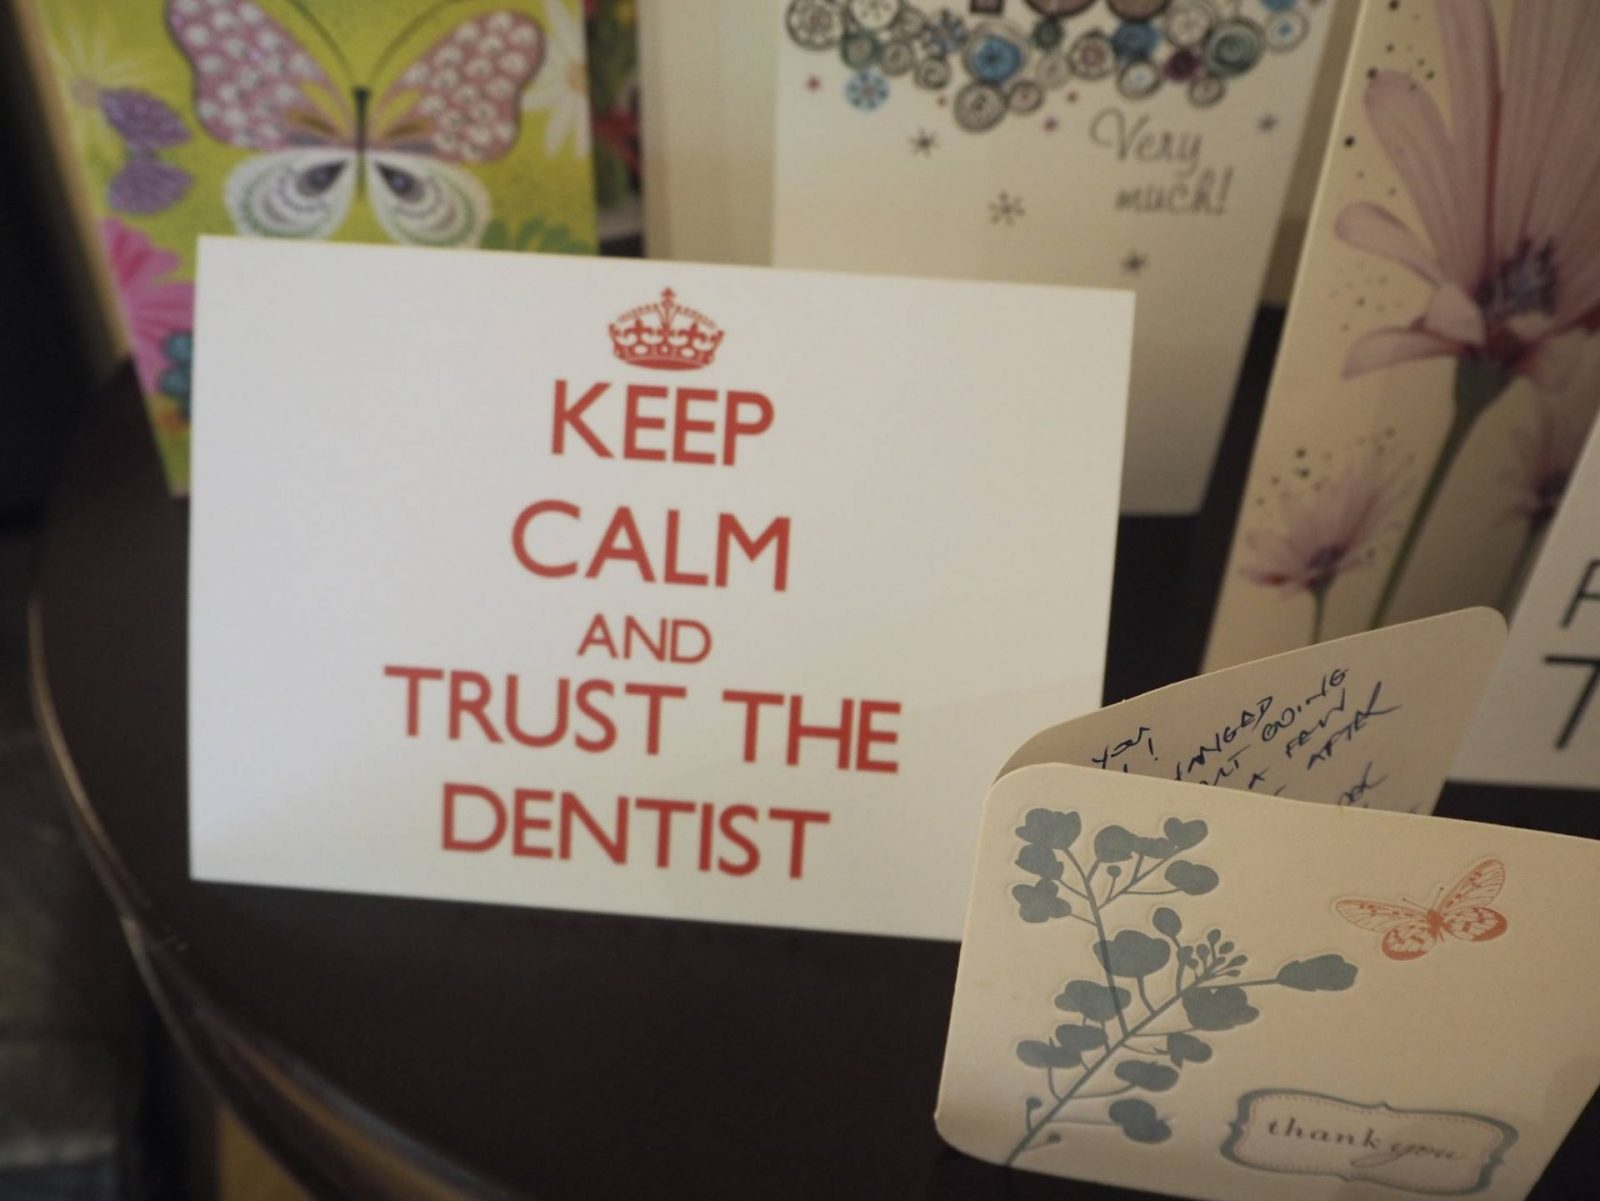 a dentist with a difference: cherrybank dental spa;